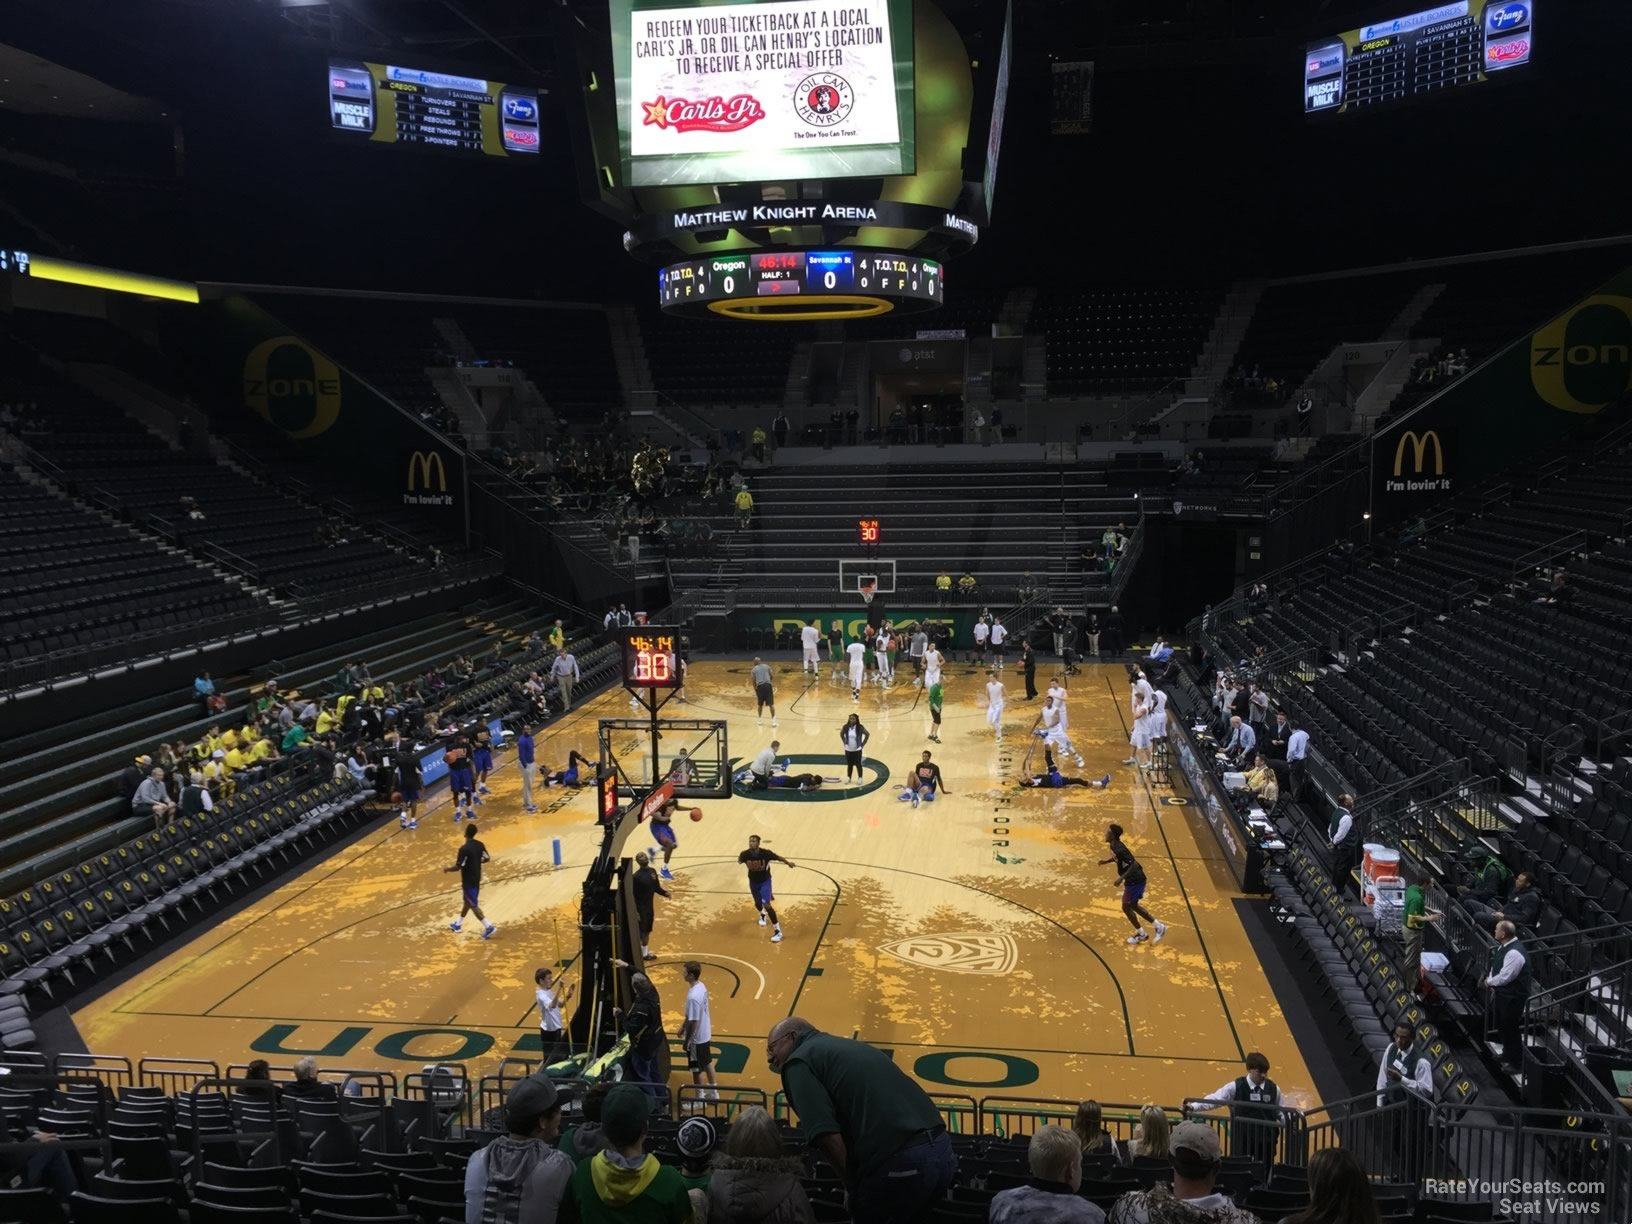 Matthew Knight Arena Section 107 Rateyourseats Com